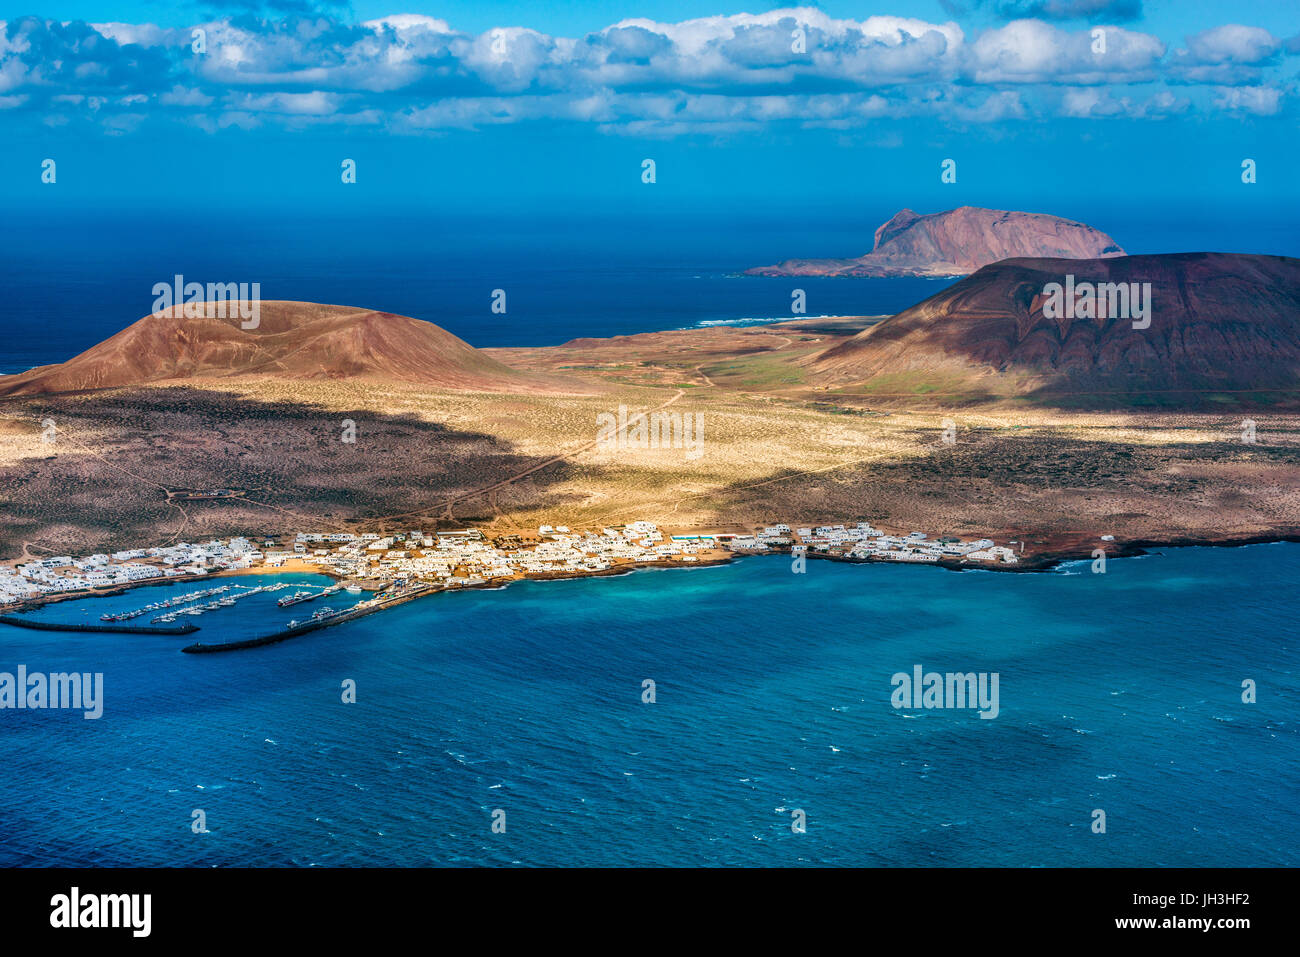 Islands of La Graciosa and Montana Clara off the northern coast of Lanzarote, Canary Islands, Spain Stock Photo